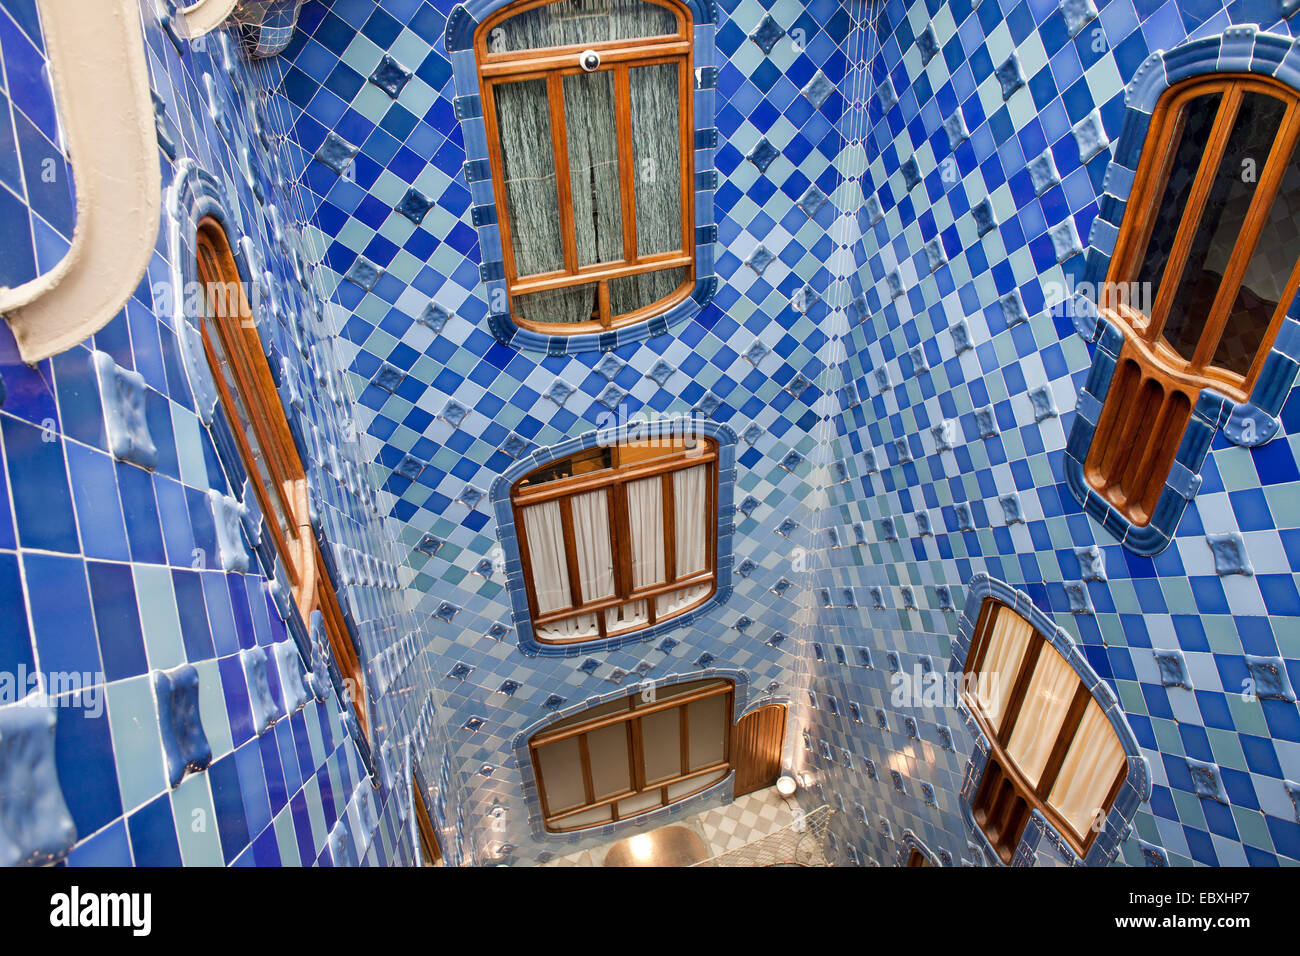 ... Casa Batllo By Antoni Gaudi In Barcelona, Catalonia, Spain. Window And  Blue Tiled